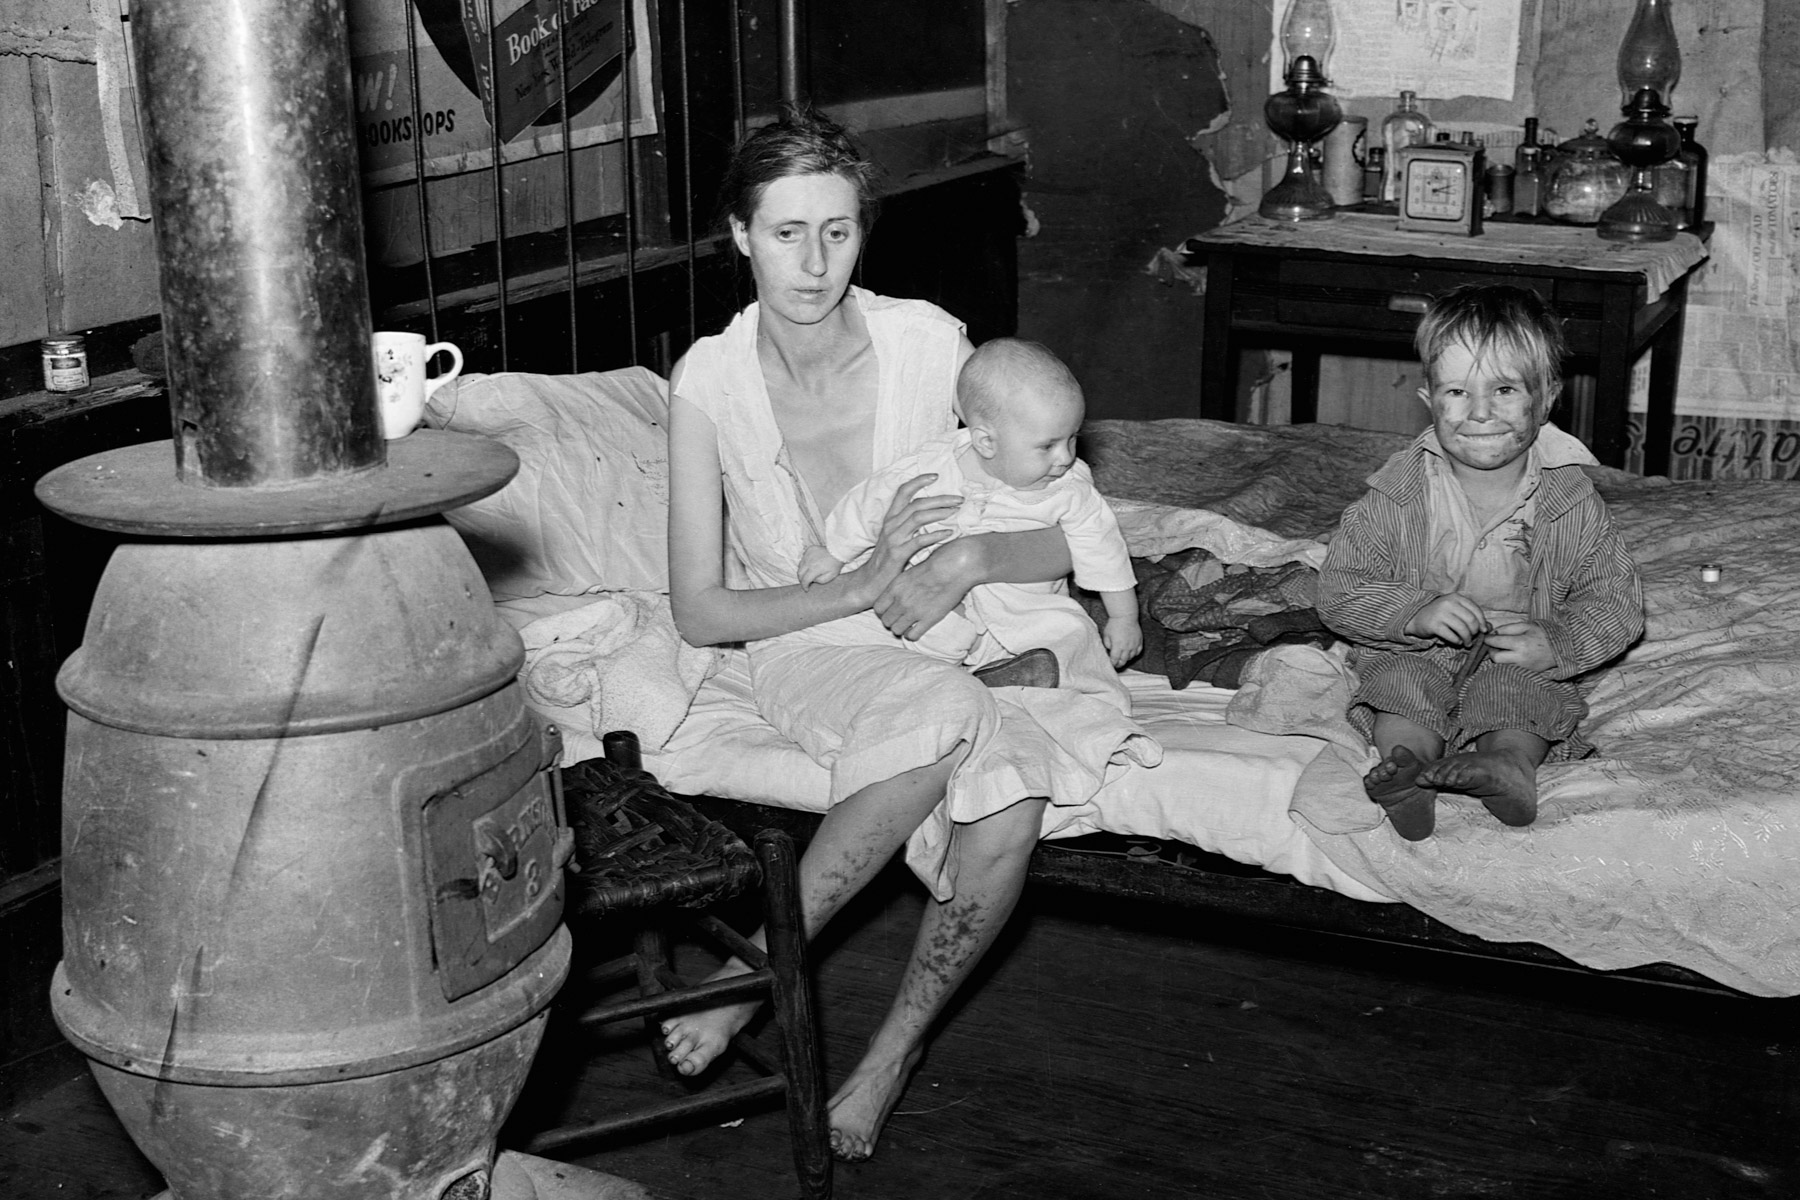 1938: The wife and two children of an unemployed mine worker living in an abandoned mining town in Marine, West Virginia. She is suffering from both tuberculosis and syphilis. (Photograph by Corbis/ Corbis via Getty Images)